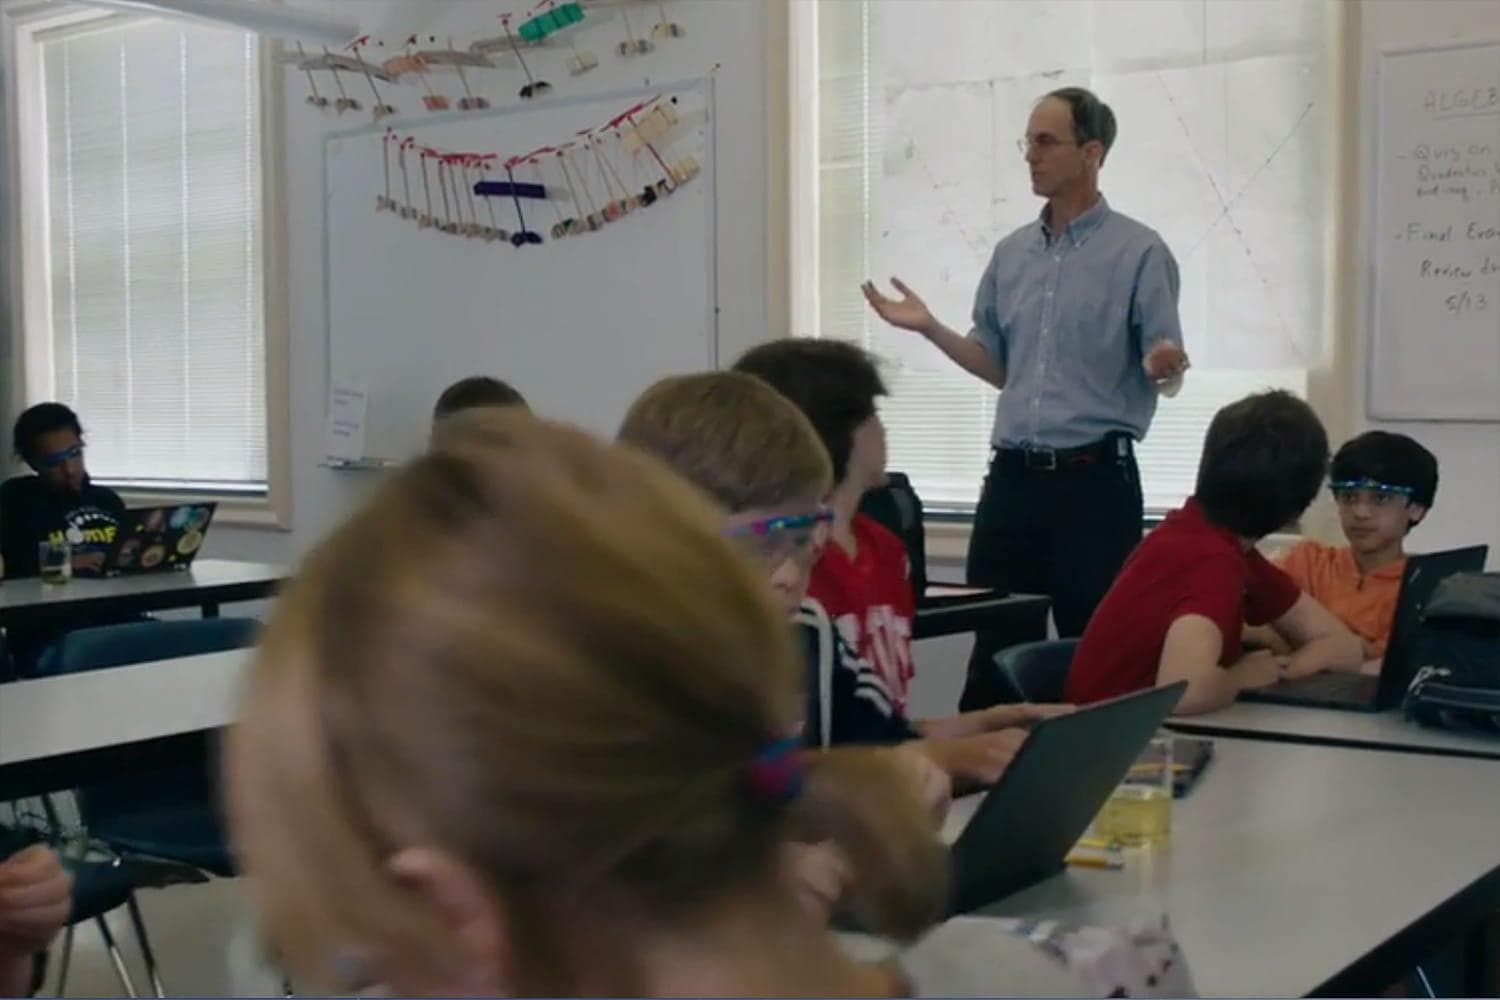 Teacher leading a discussion in classroom